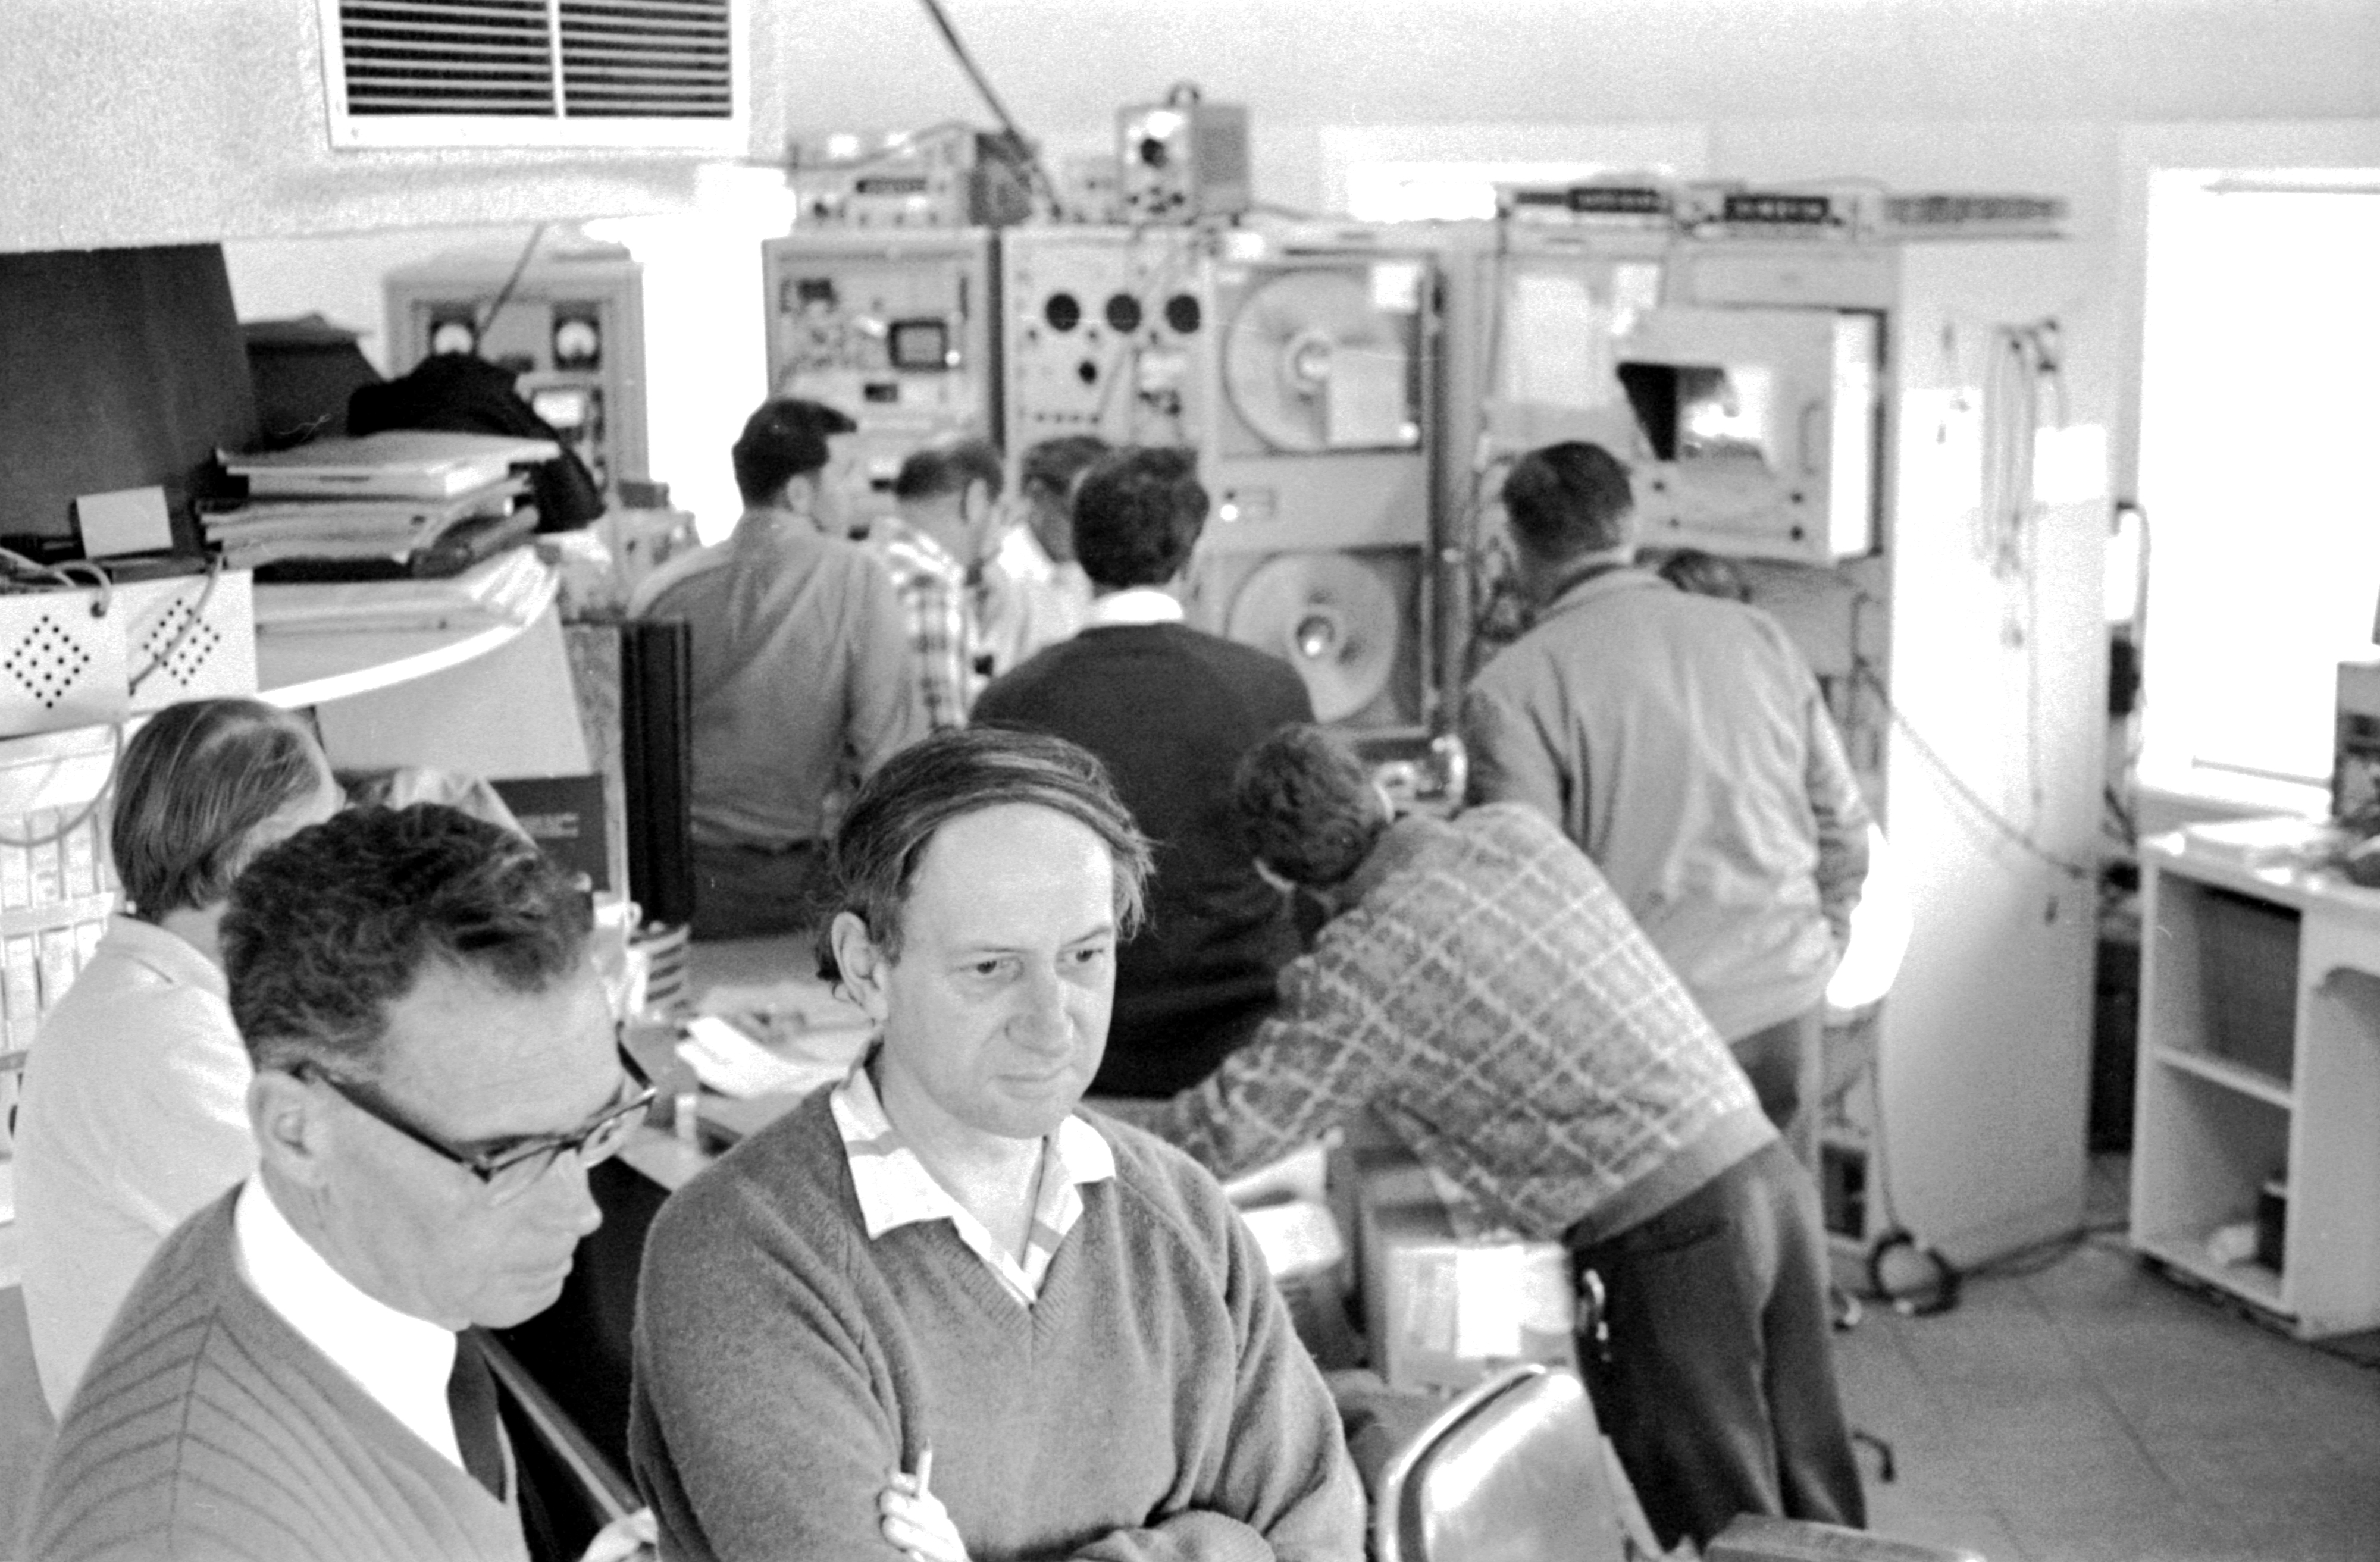 A black and white photograph of two men in the foreground looking at something to the side of the camera; in the background six men with their backs to the camera are looking at a bank of controls and switches.